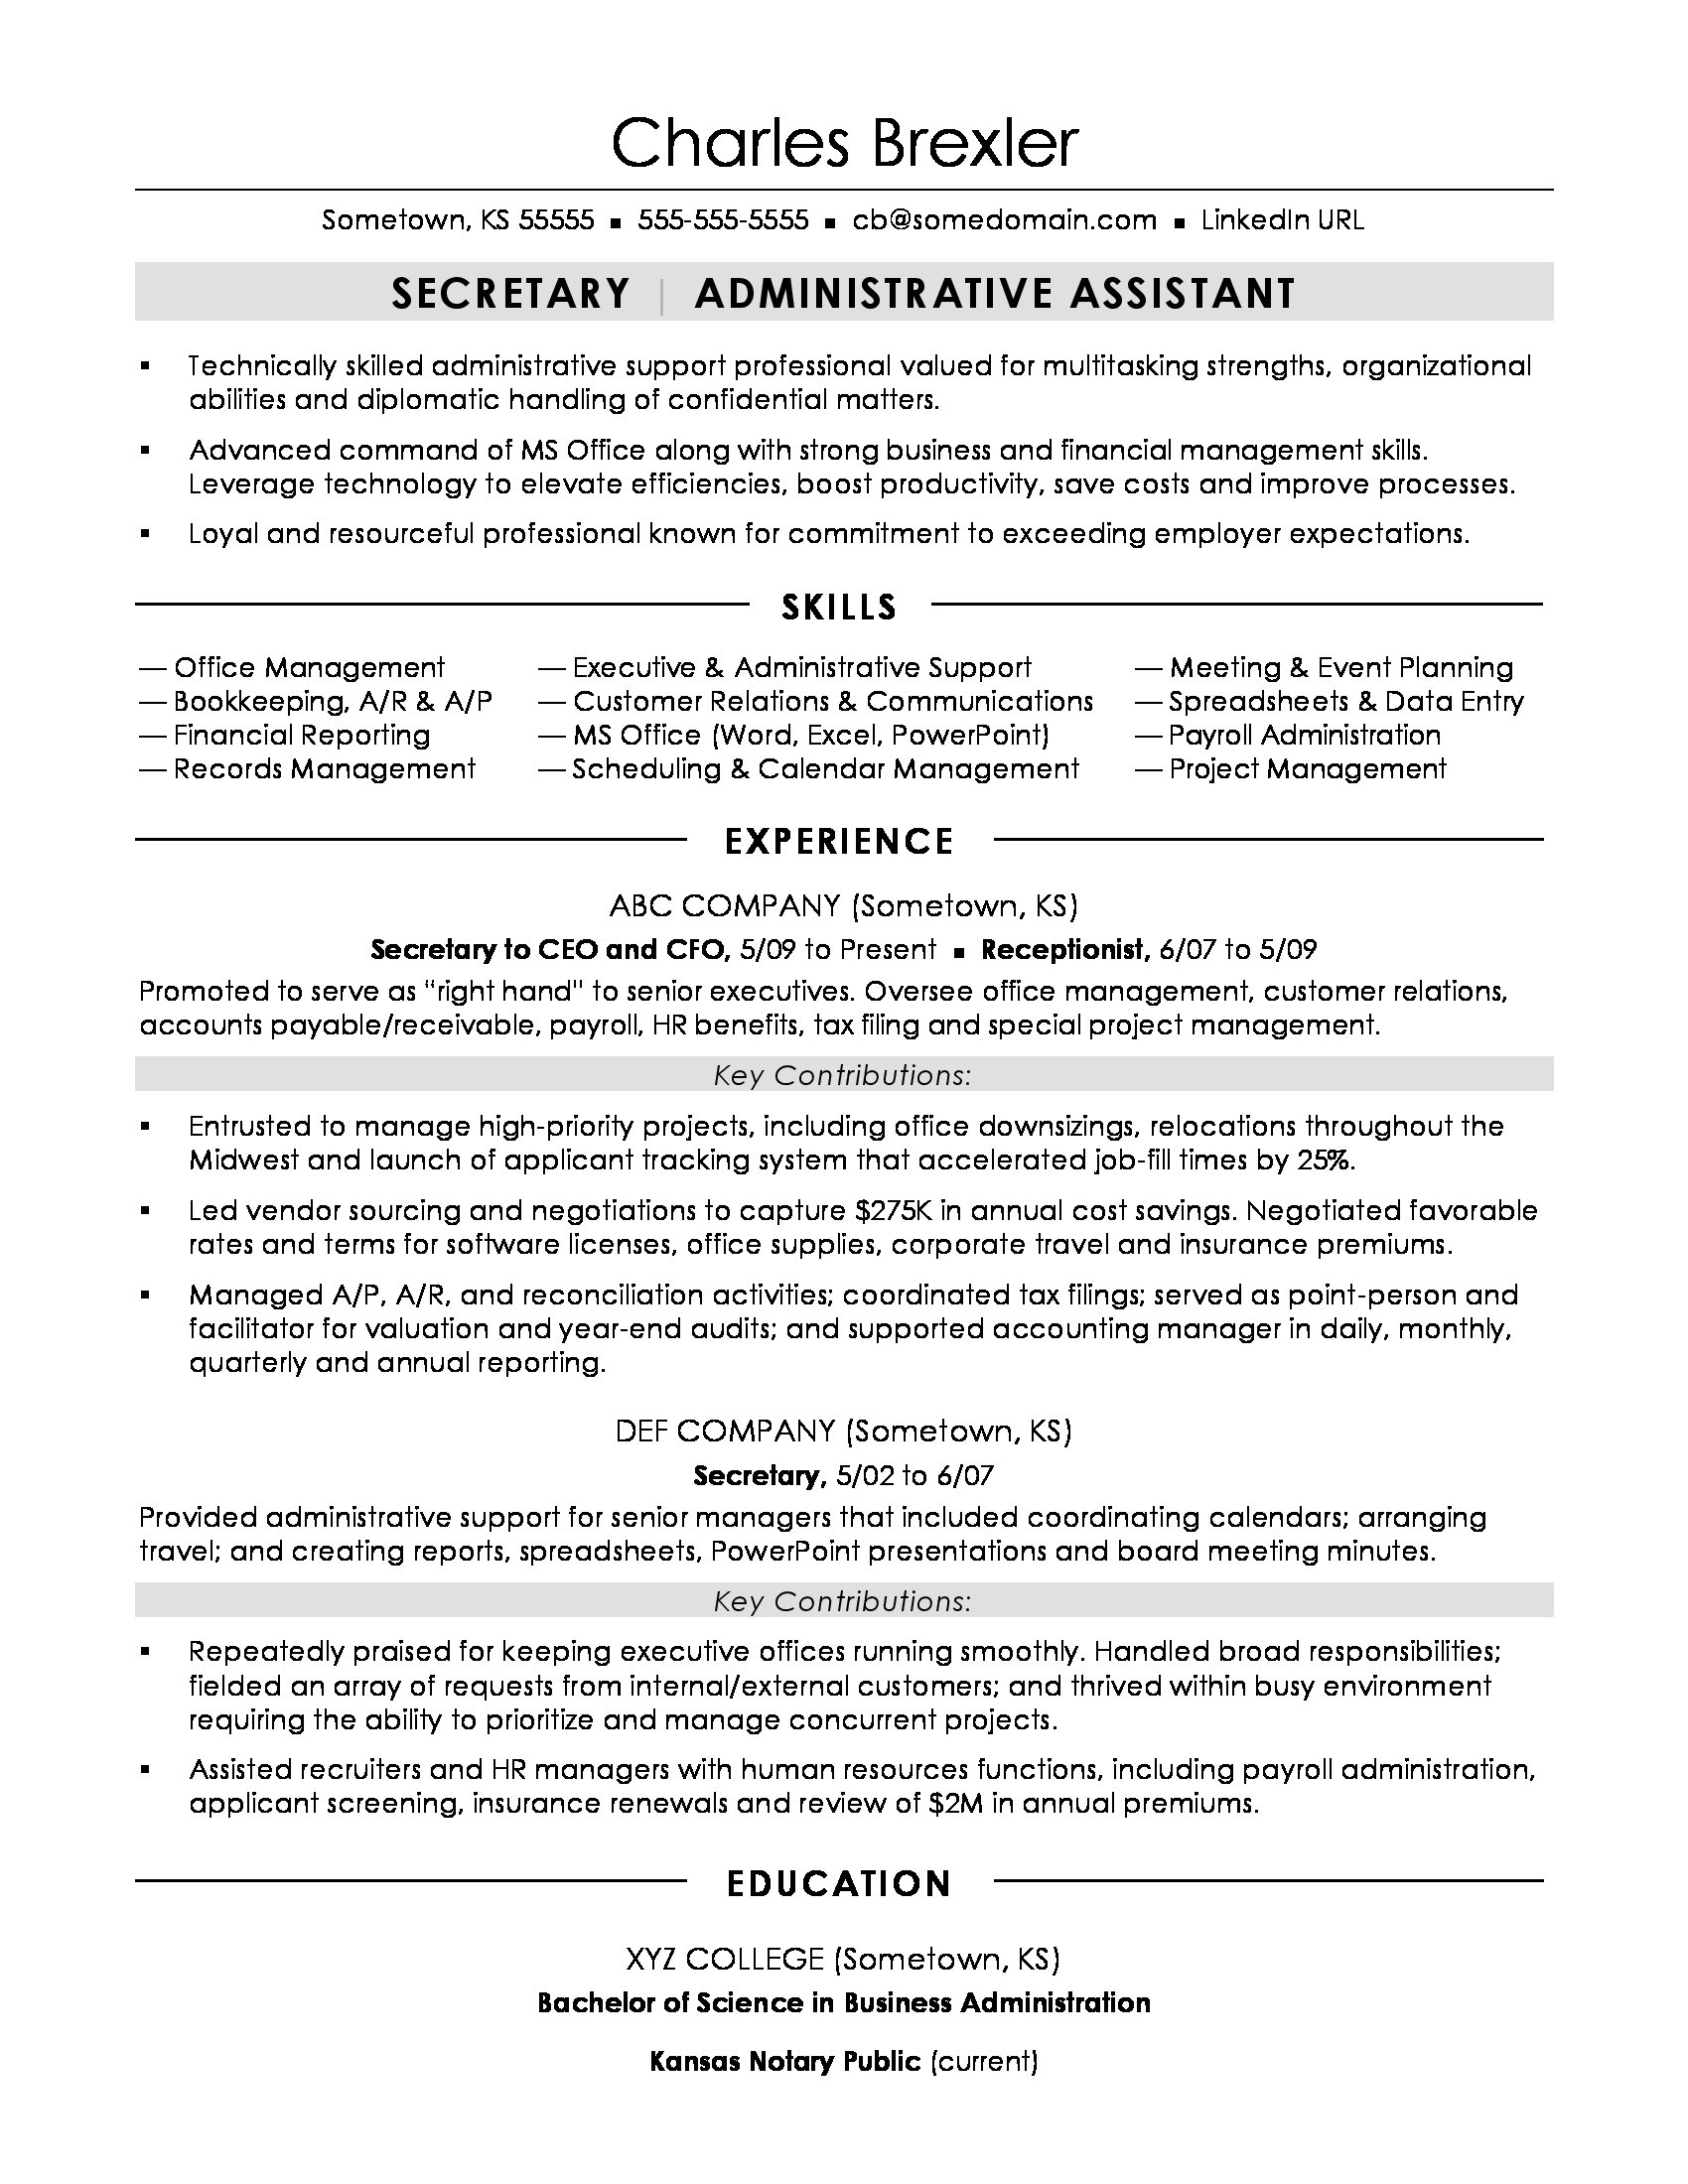 secretary resume sample monster attributes and skills examples photography for summer Resume Resume Attributes And Skills Examples